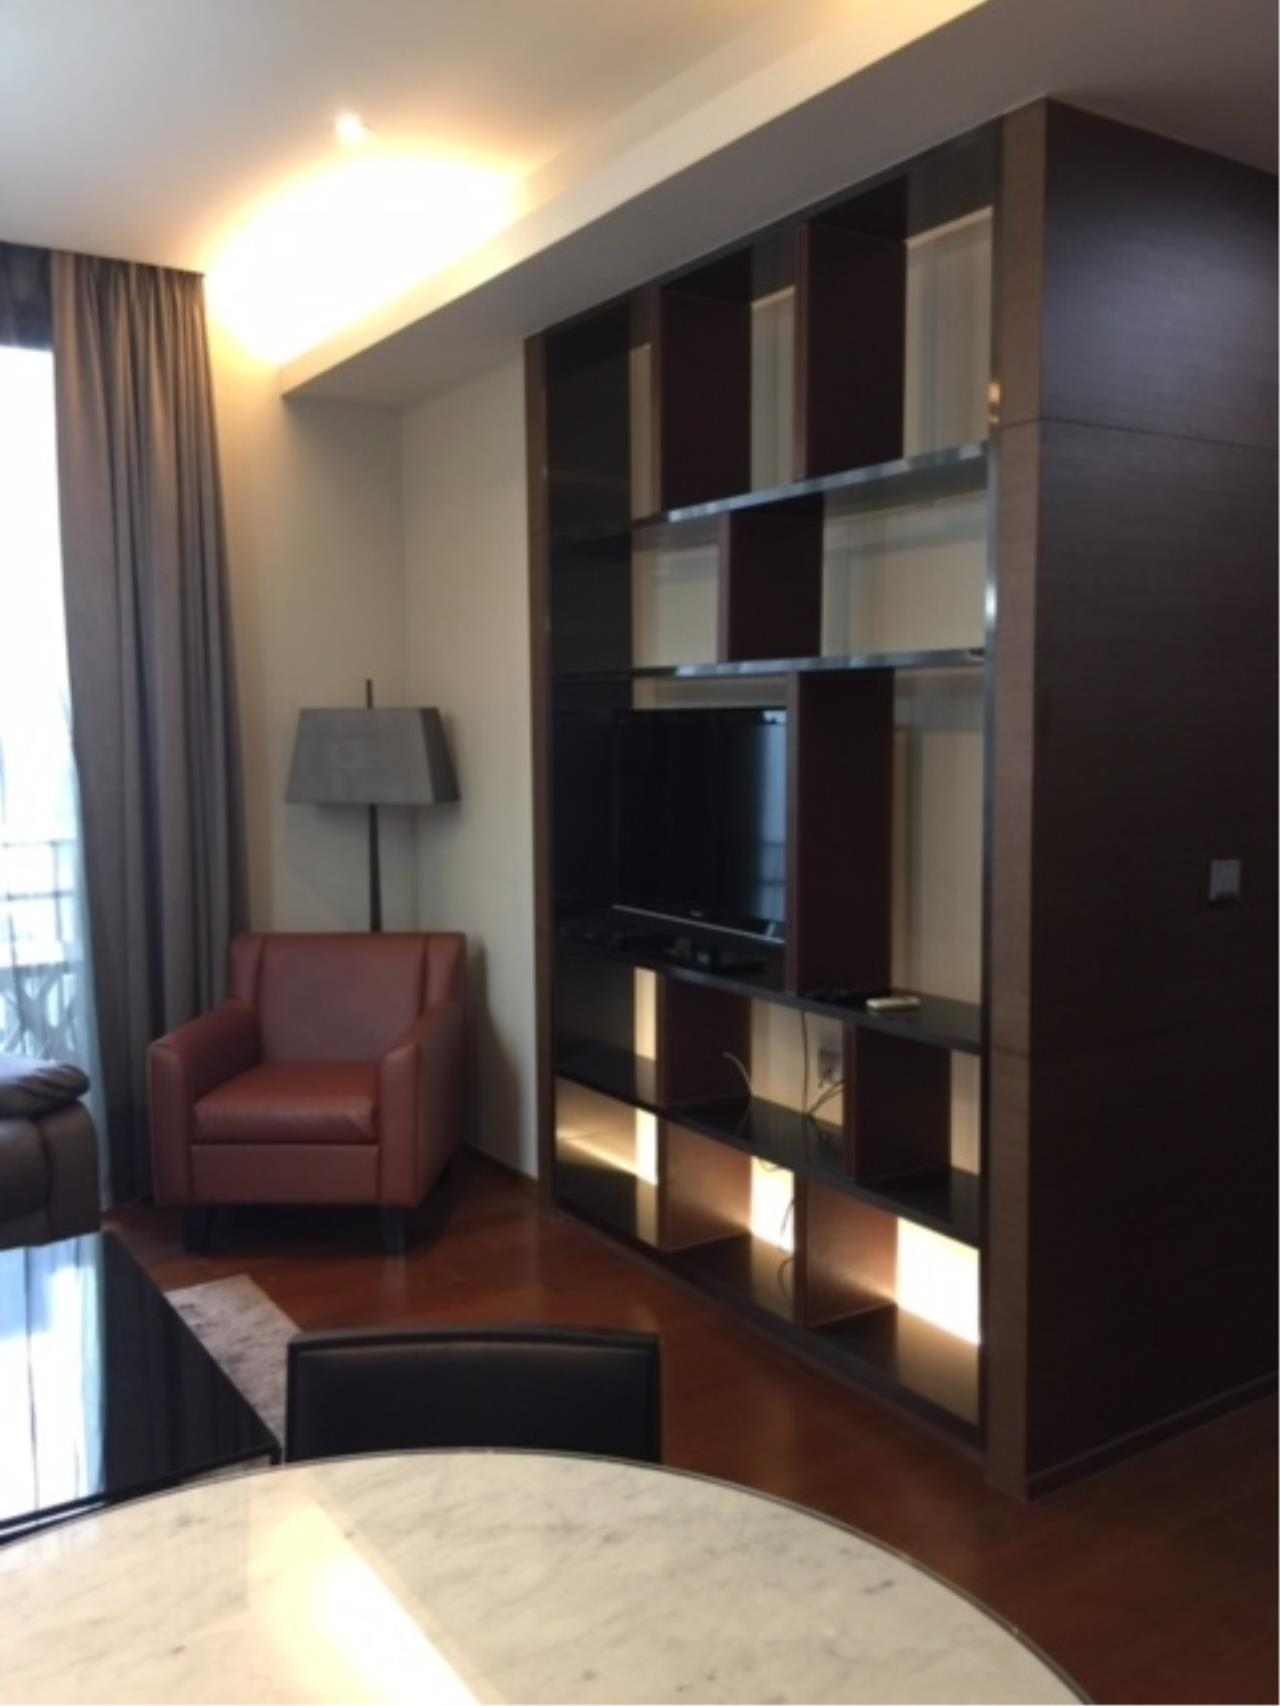 Agent - Mayteekul Sujirapinyokul Agency's AC11090418 For Rent Condo Quattro by Sansiri Thonglor BTS Thonglor 5